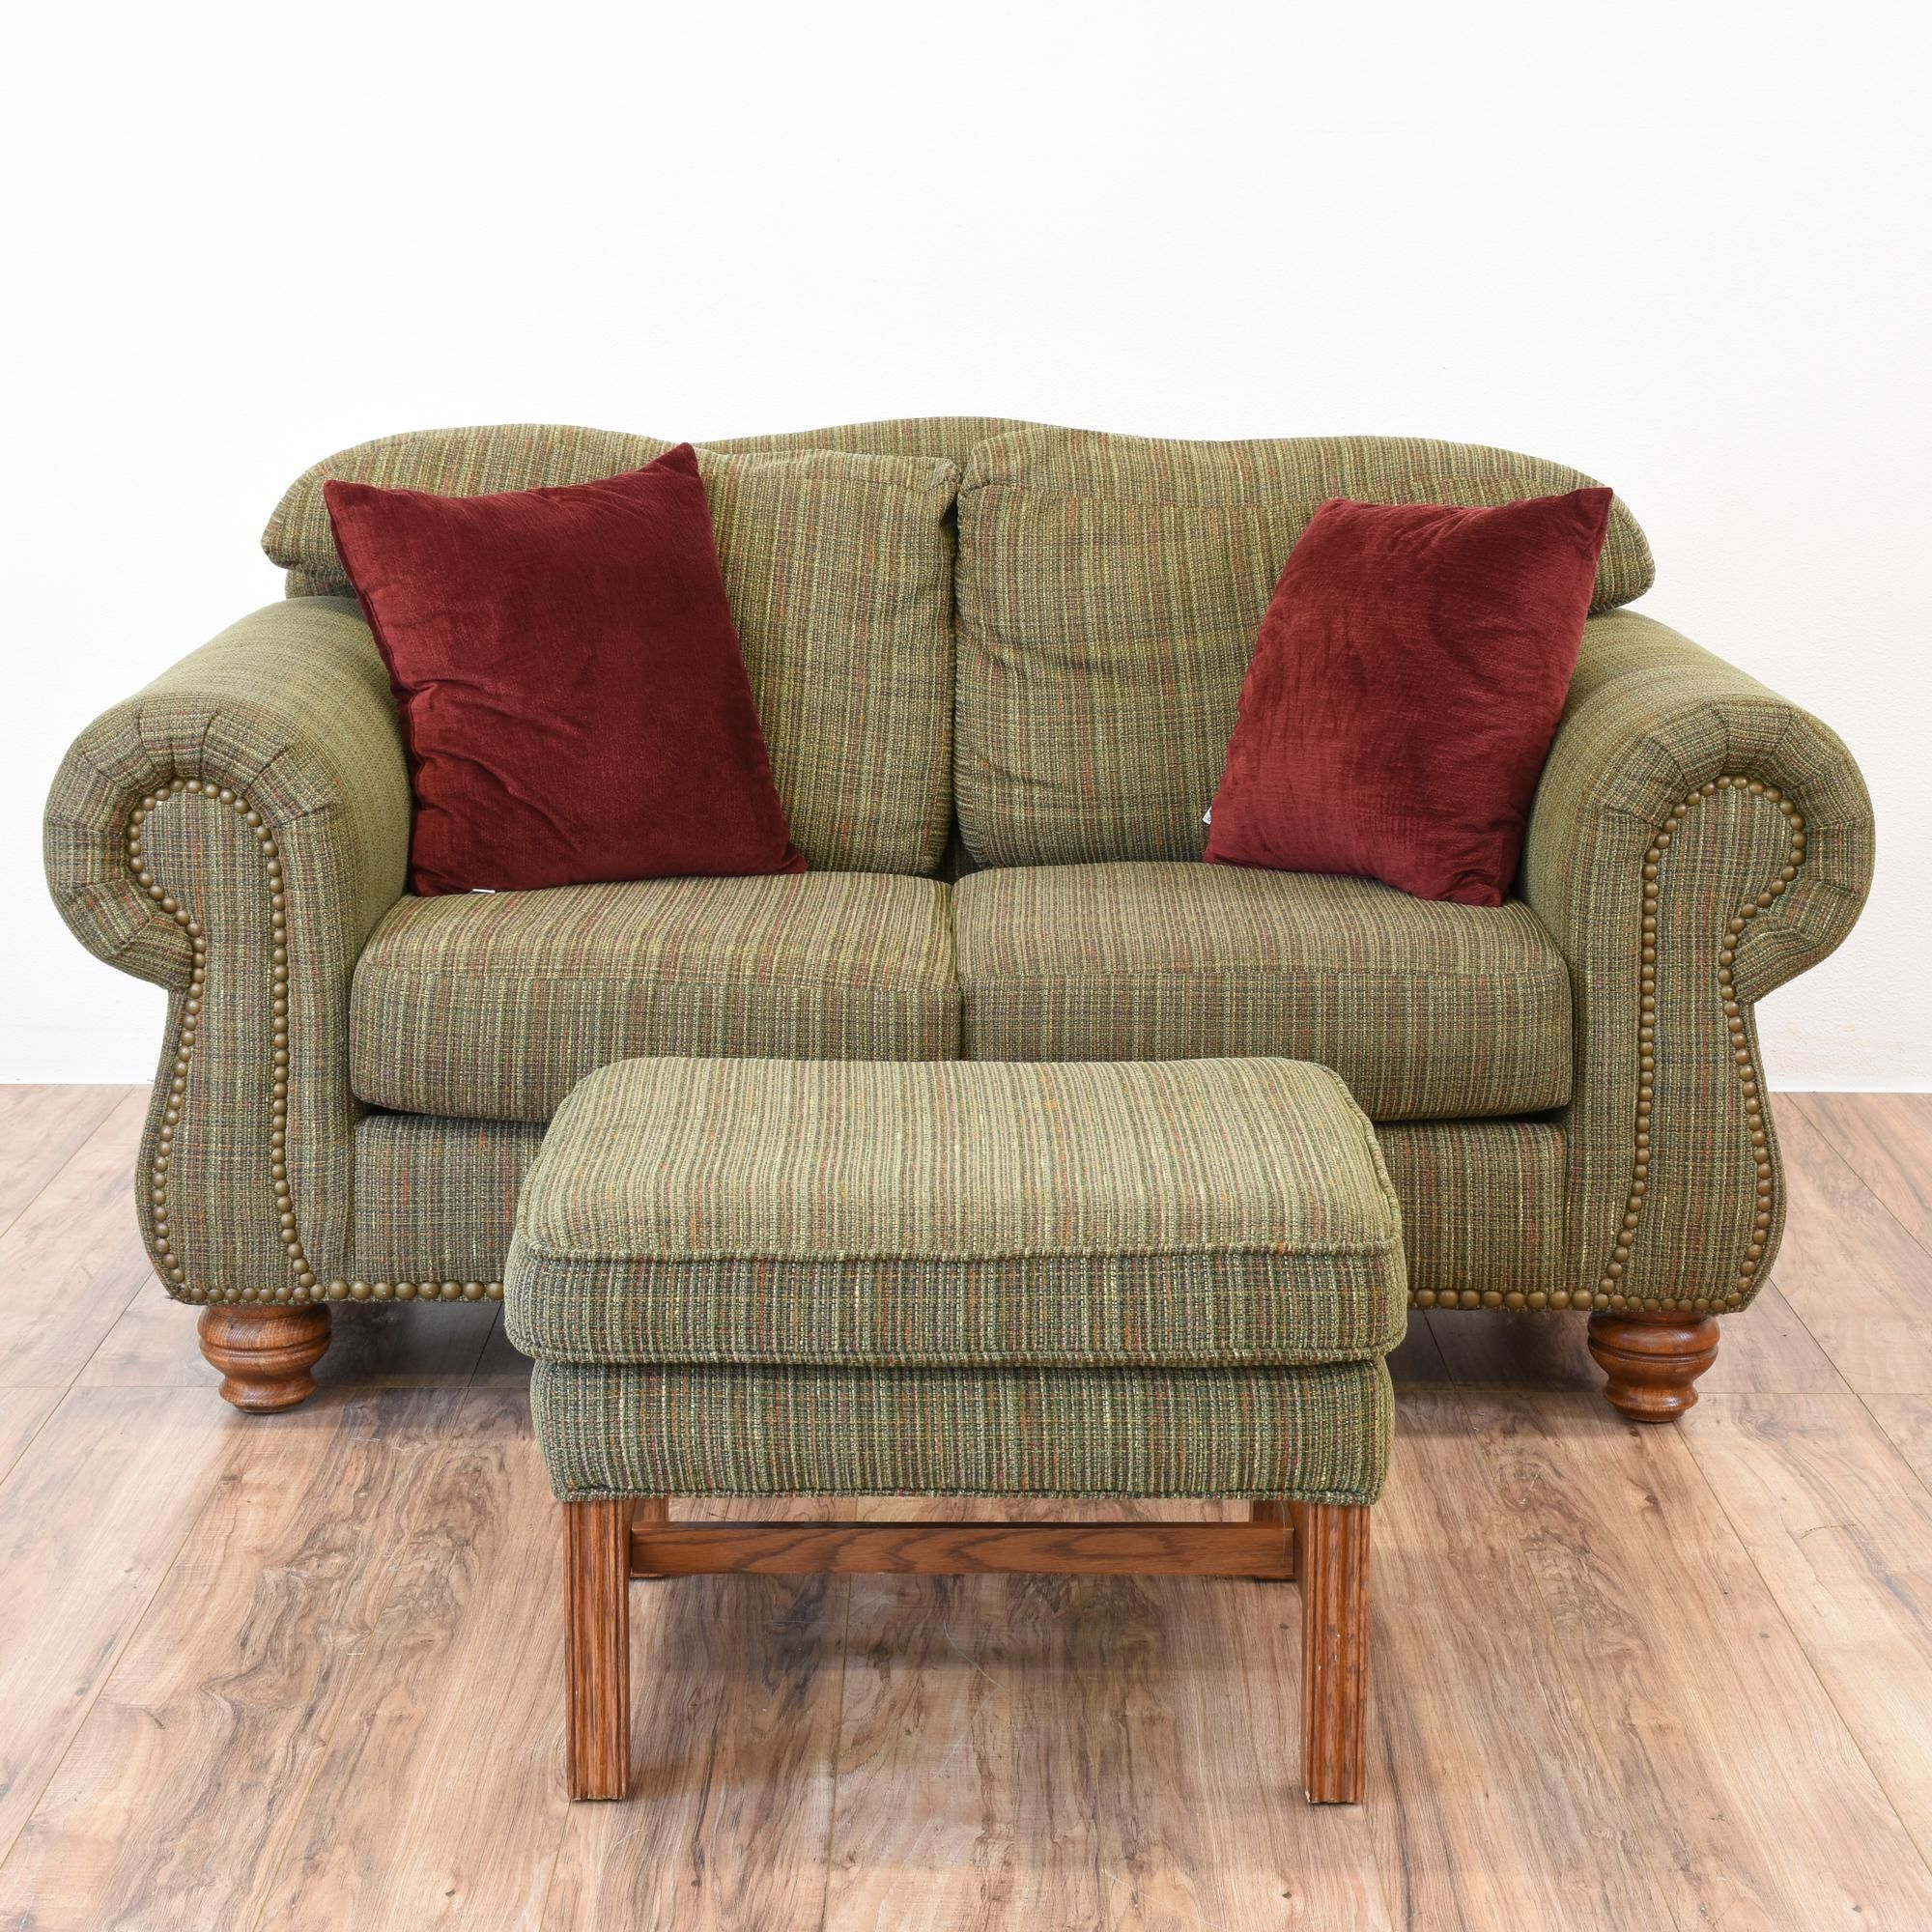 green floral sofa memory foam topper for queen sleeper this loveseat and ottoman are upholstered in a durable